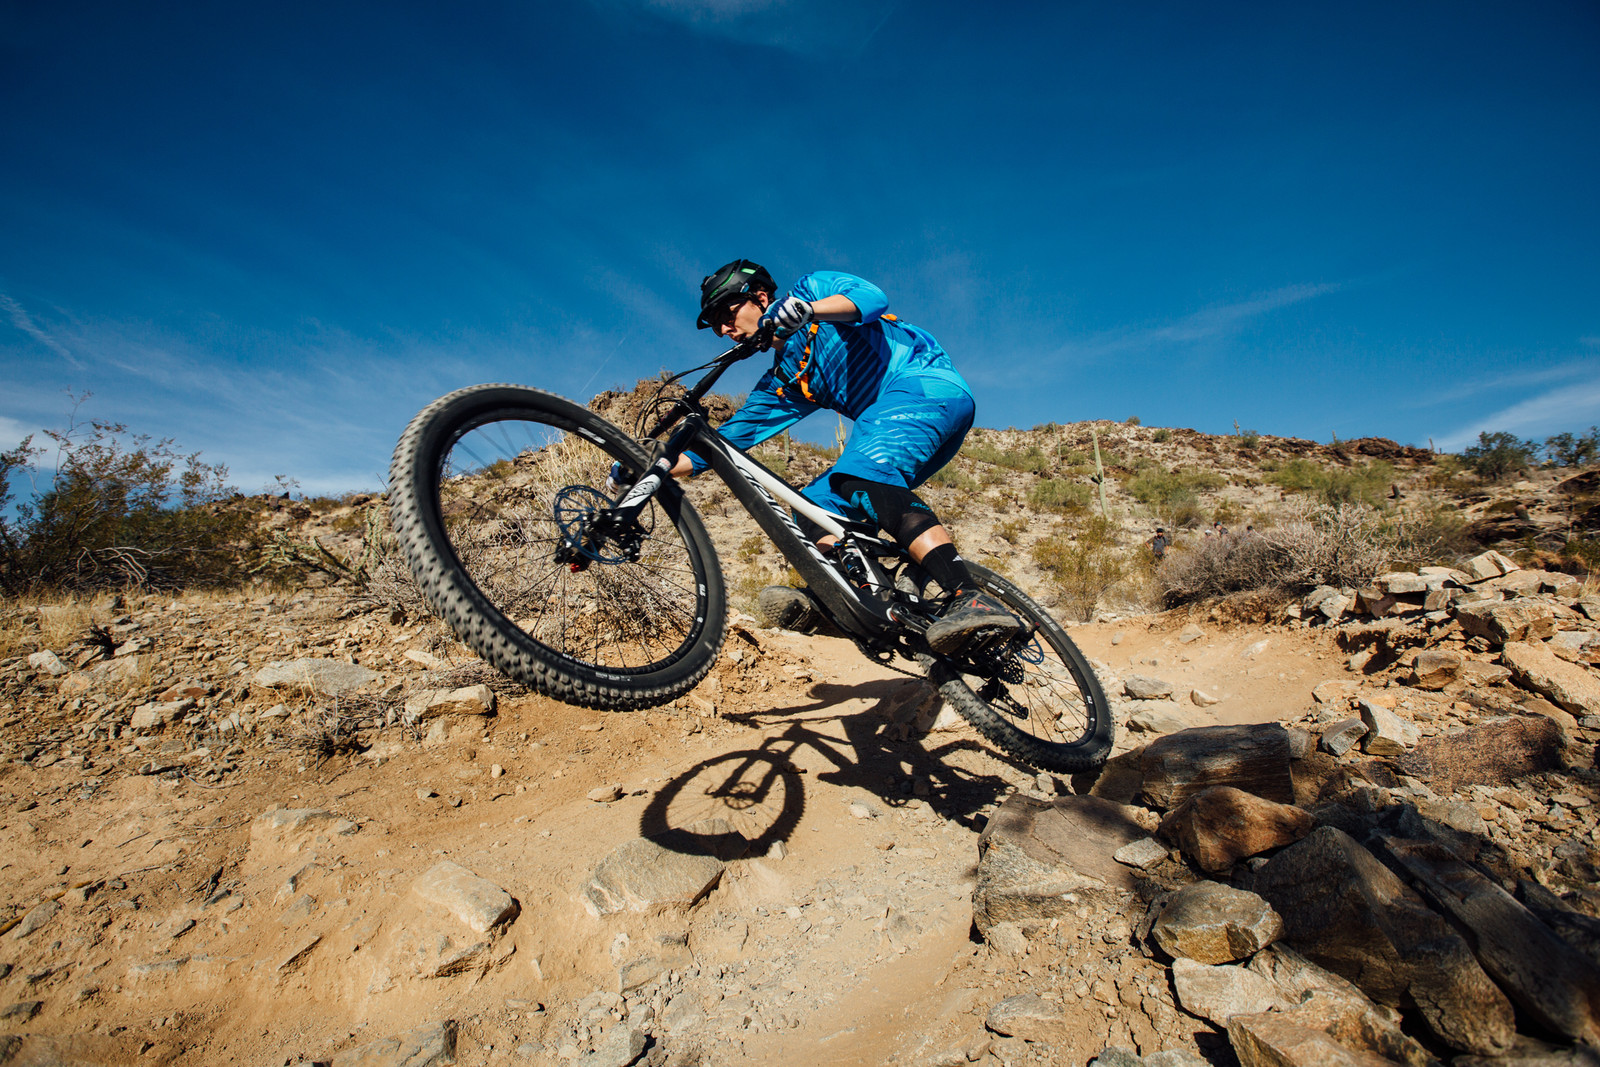 No Idea Where He's Headed - Just The Bangers - 2016 Vital MTB Test Sessions Photo Gallery - Mountain Biking Pictures - Vital MTB